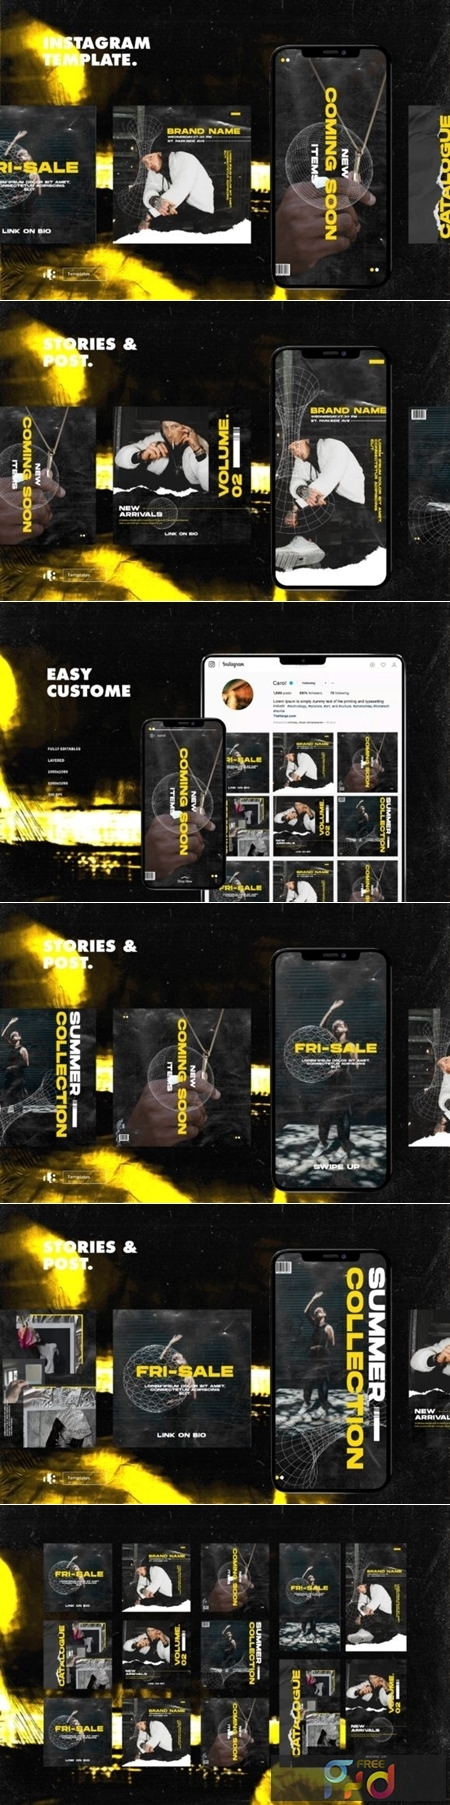 Instagram Template Vol.7 1915902 1